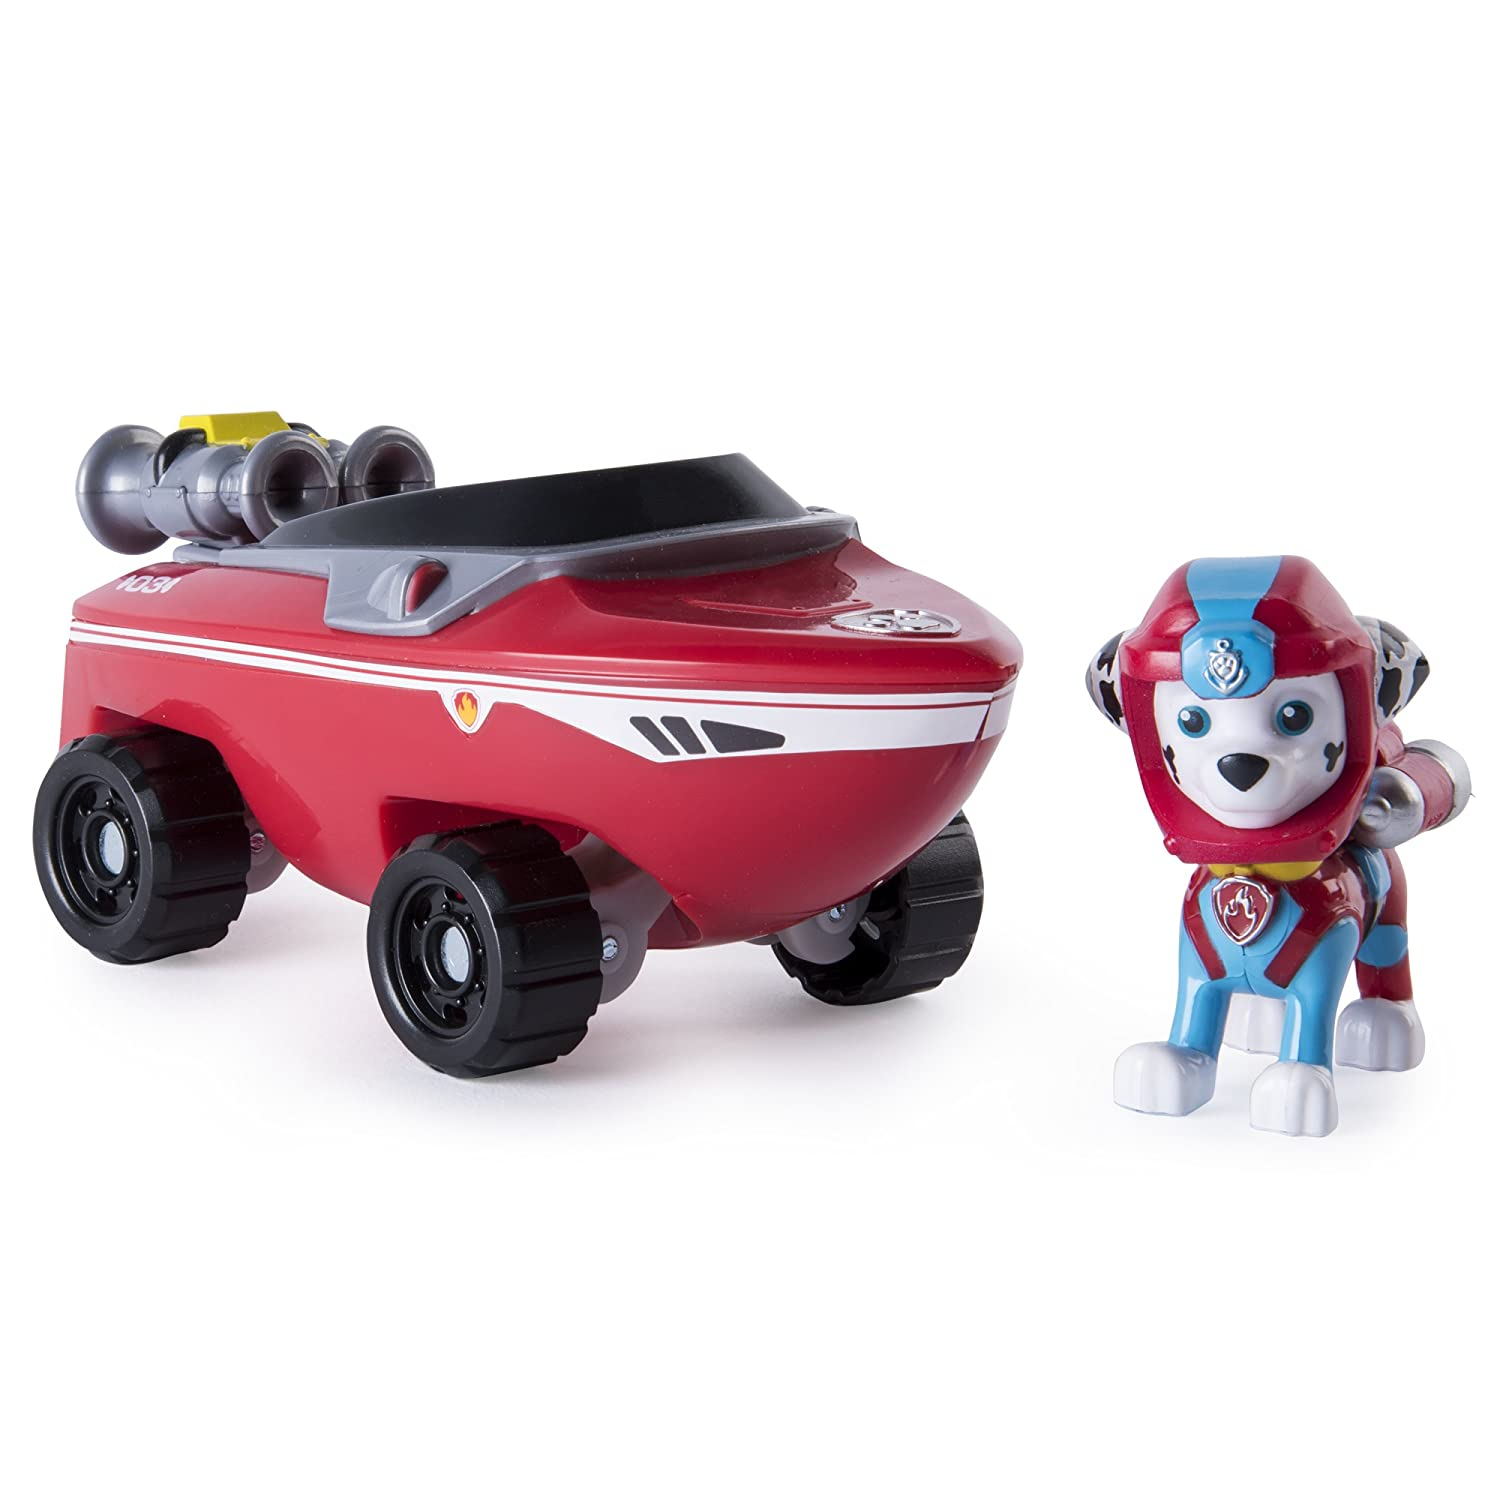 Paw Patrol 20085000-6040086 Basic Vehicle Marshall SeaPatrol Spinmaster -- Import Yantian